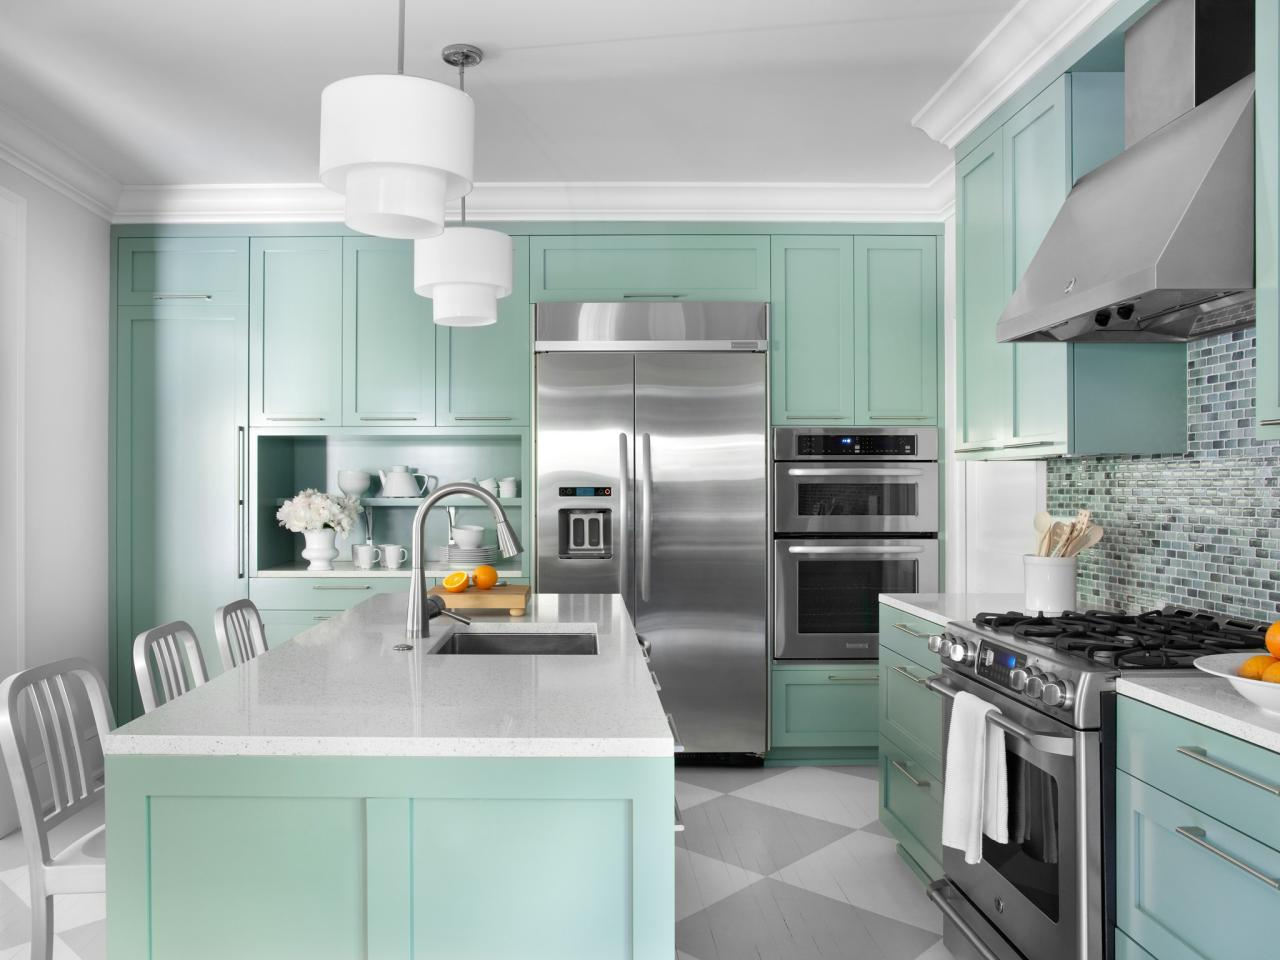 Kitchen Cabinet Colors color ideas for painting kitchen cabinets + hgtv pictures | hgtv